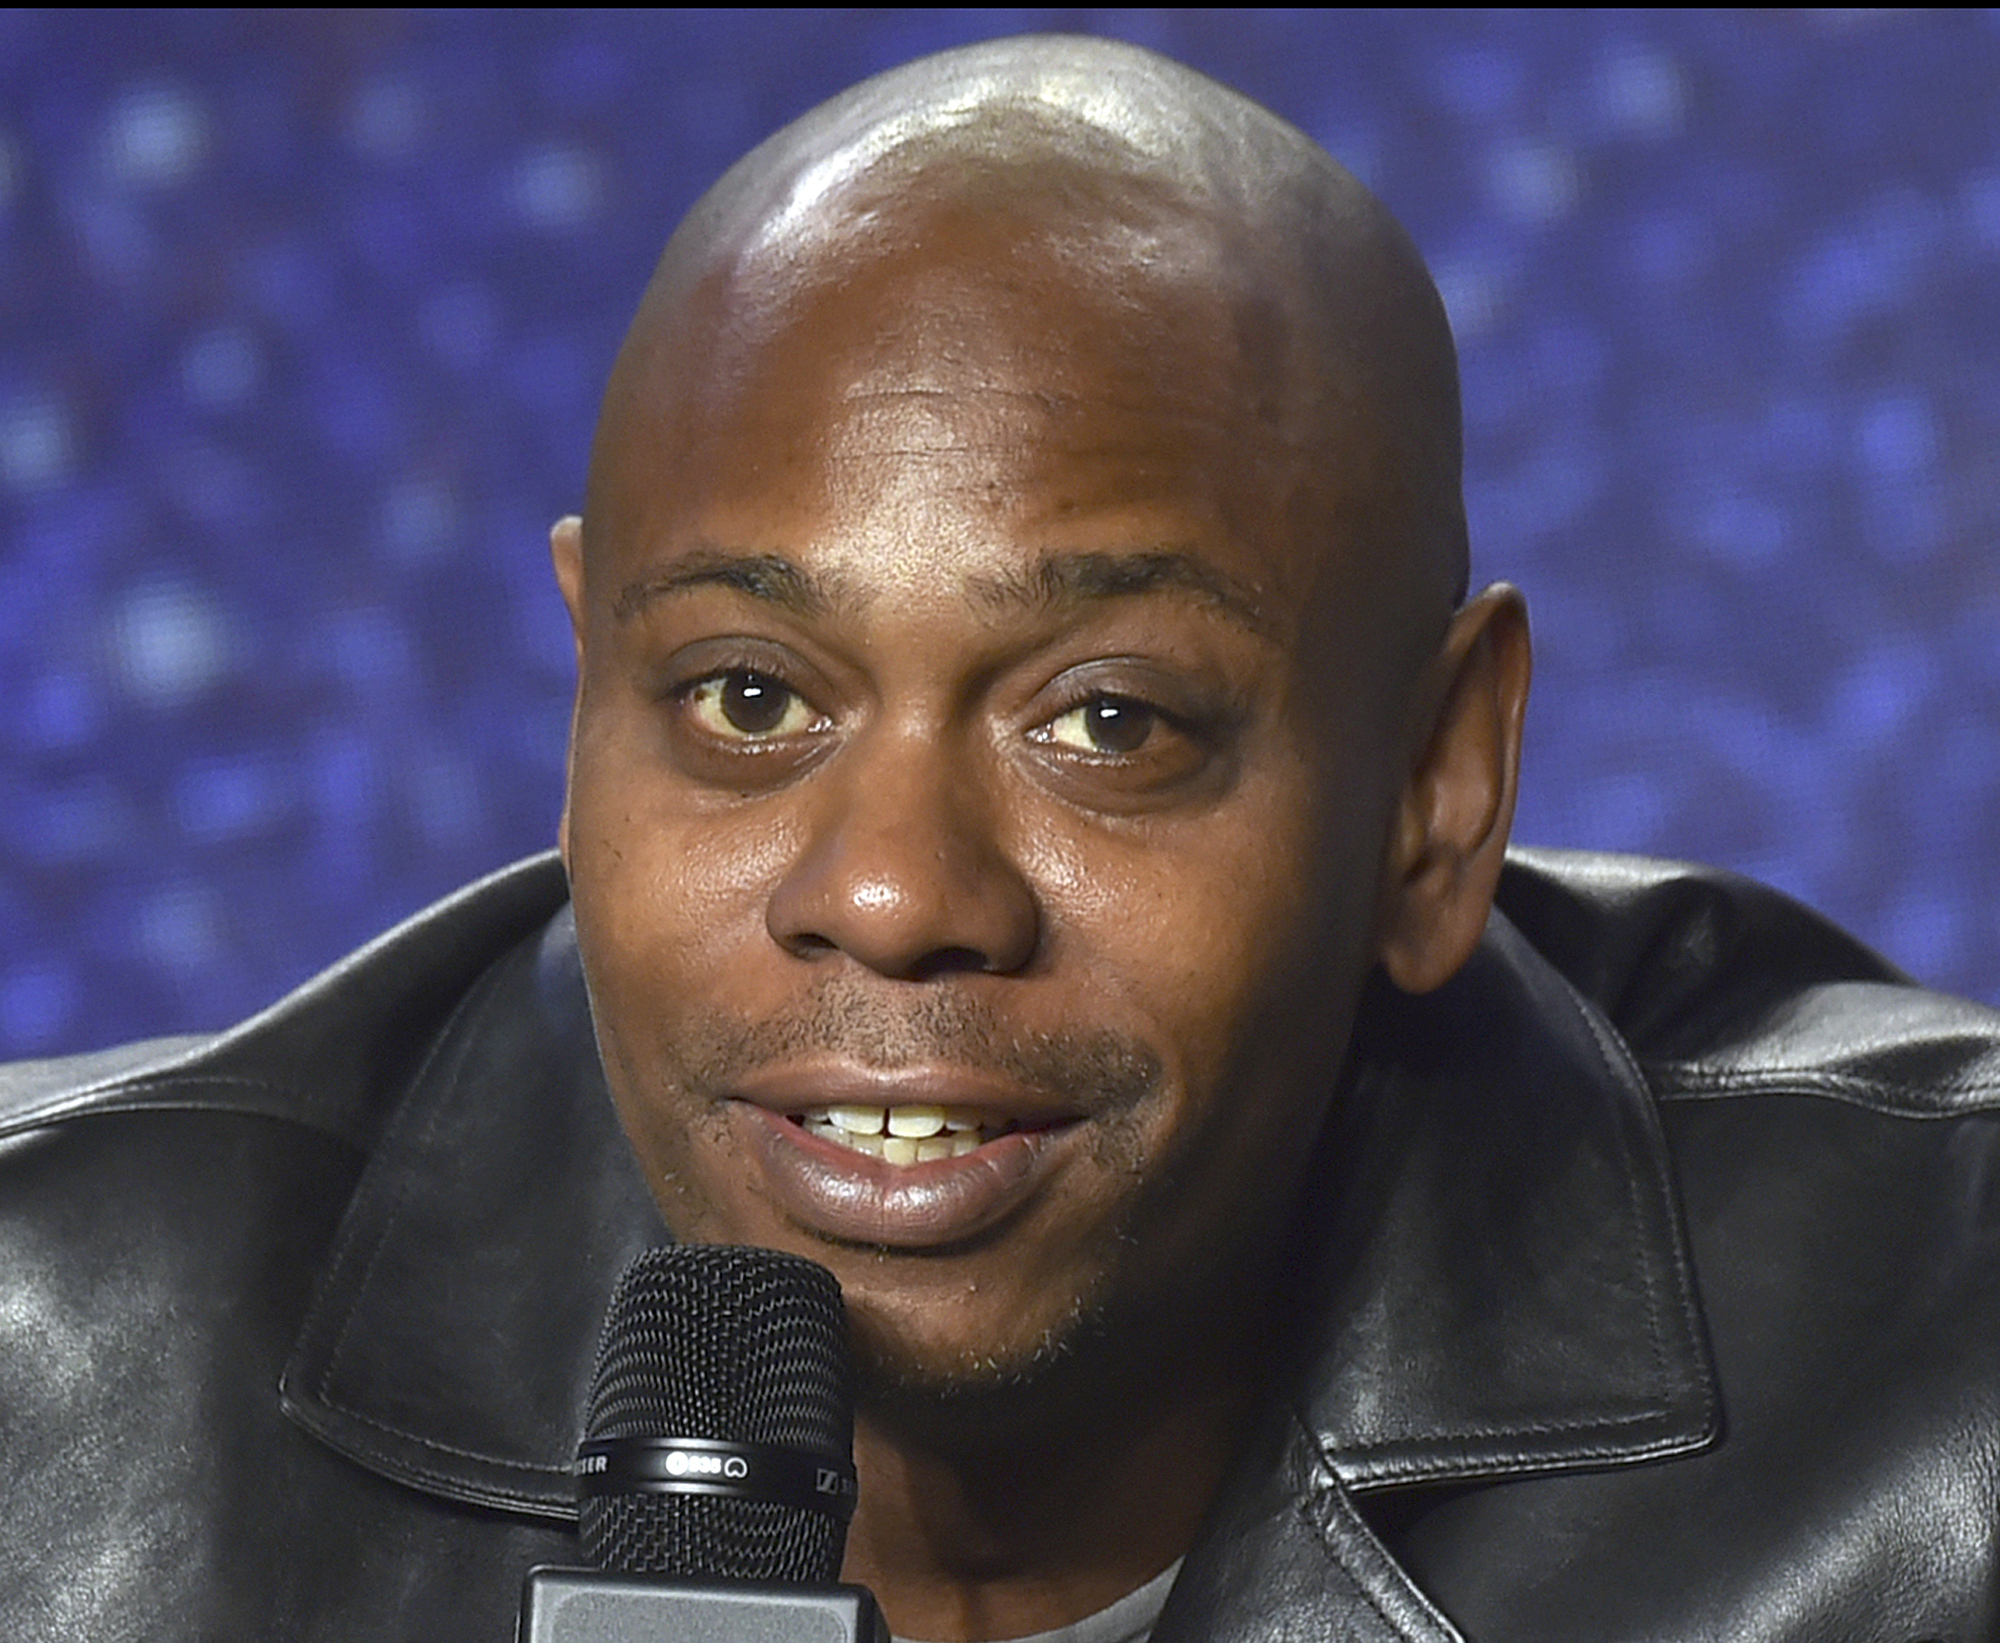 Dave Chappelle speaks at the press conference at the Toronto International Film Festival at the TIFF Bell Lightbox in July.